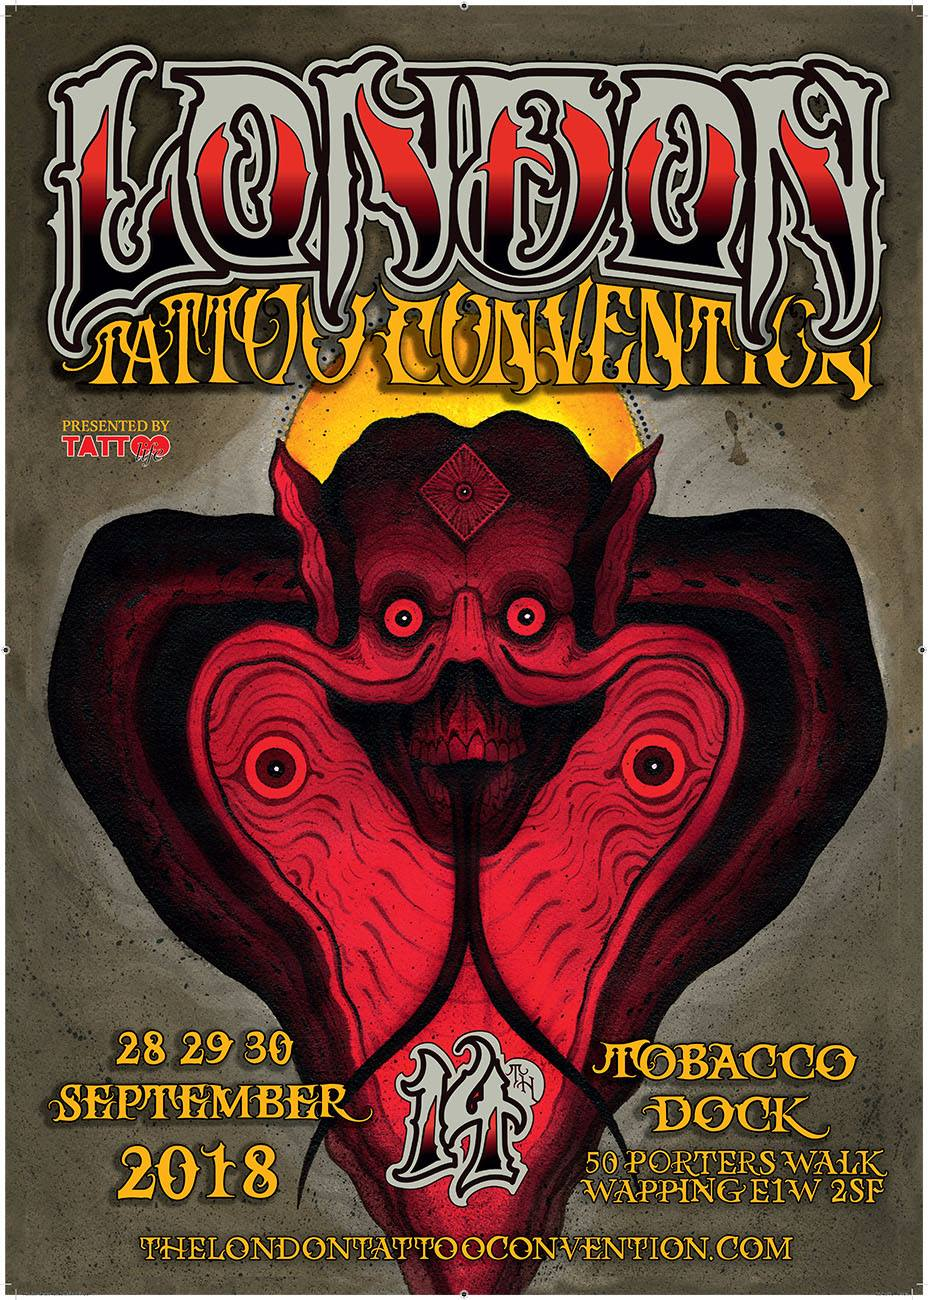 Exhibition Stall Tds : The international london tattoo convention lsd magazine